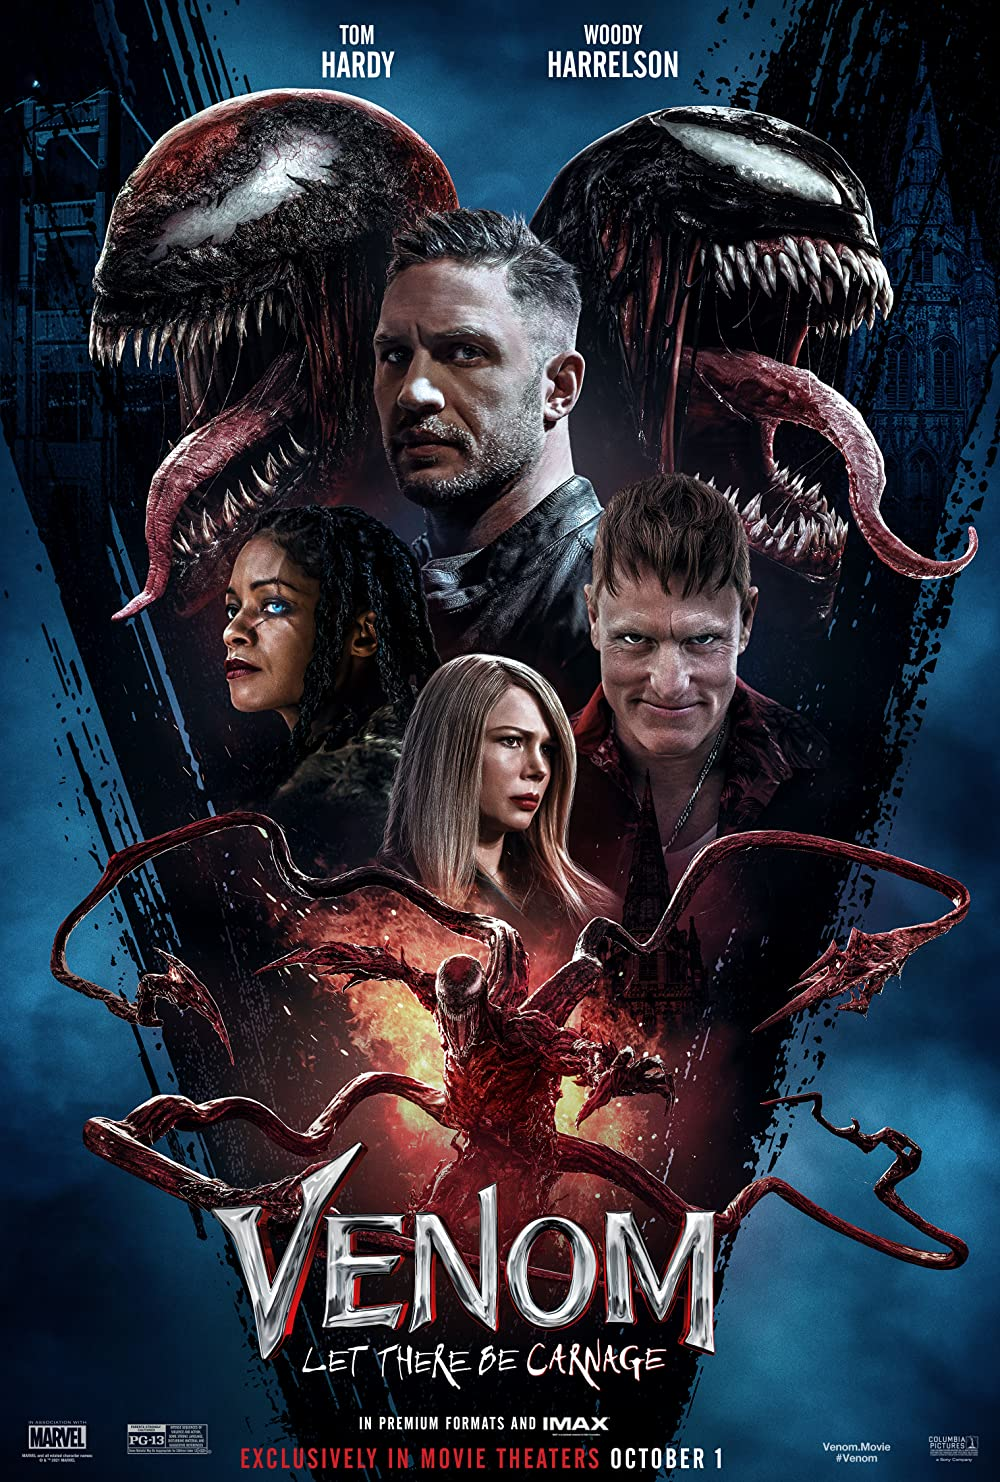 Venom 2 Let There Be Carnage 2021 Hindi Dubbed (Voice Over) 720p V2 HDCAM 685MB Download